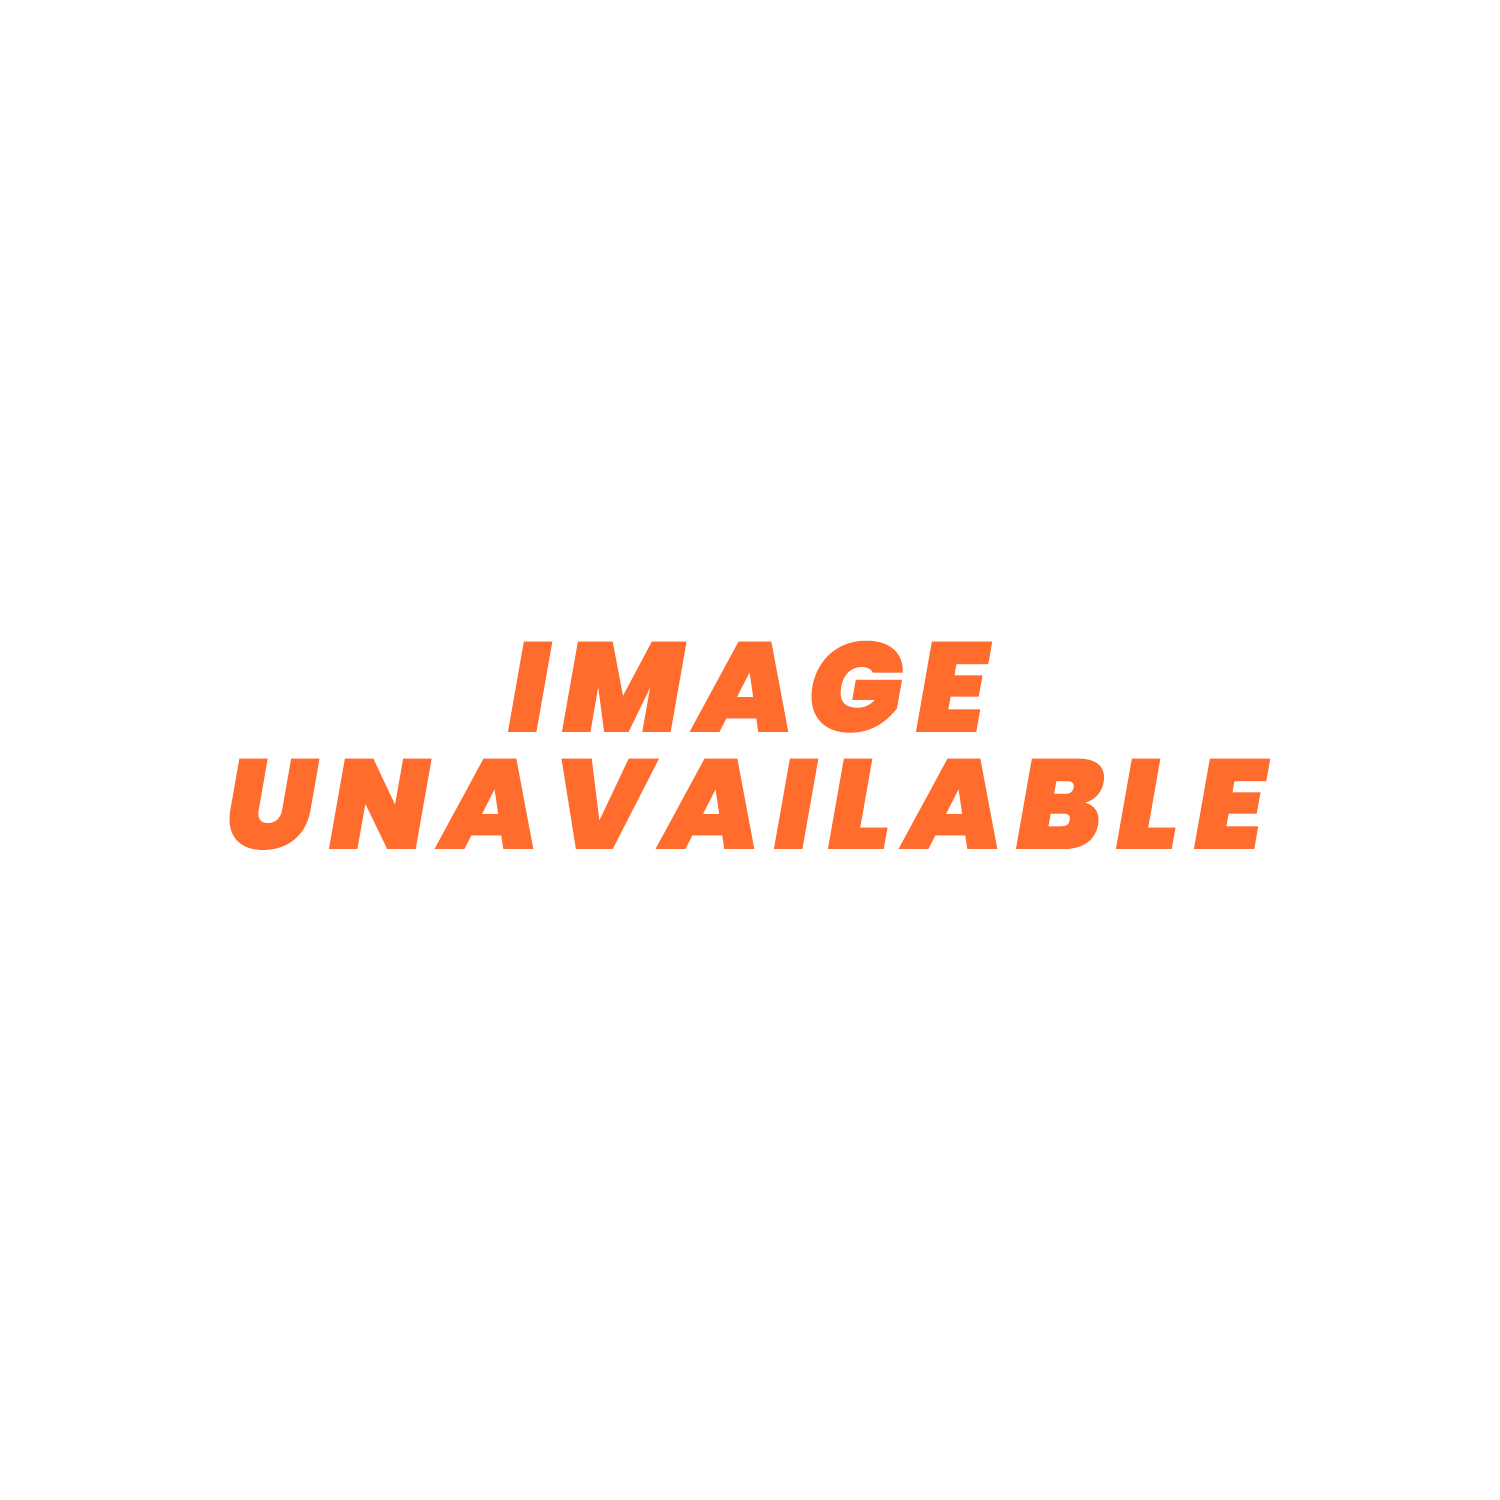 "SPAL Radiator Fan - 3.75"" (96mm) Push VA32-A101-62S 124cfm"